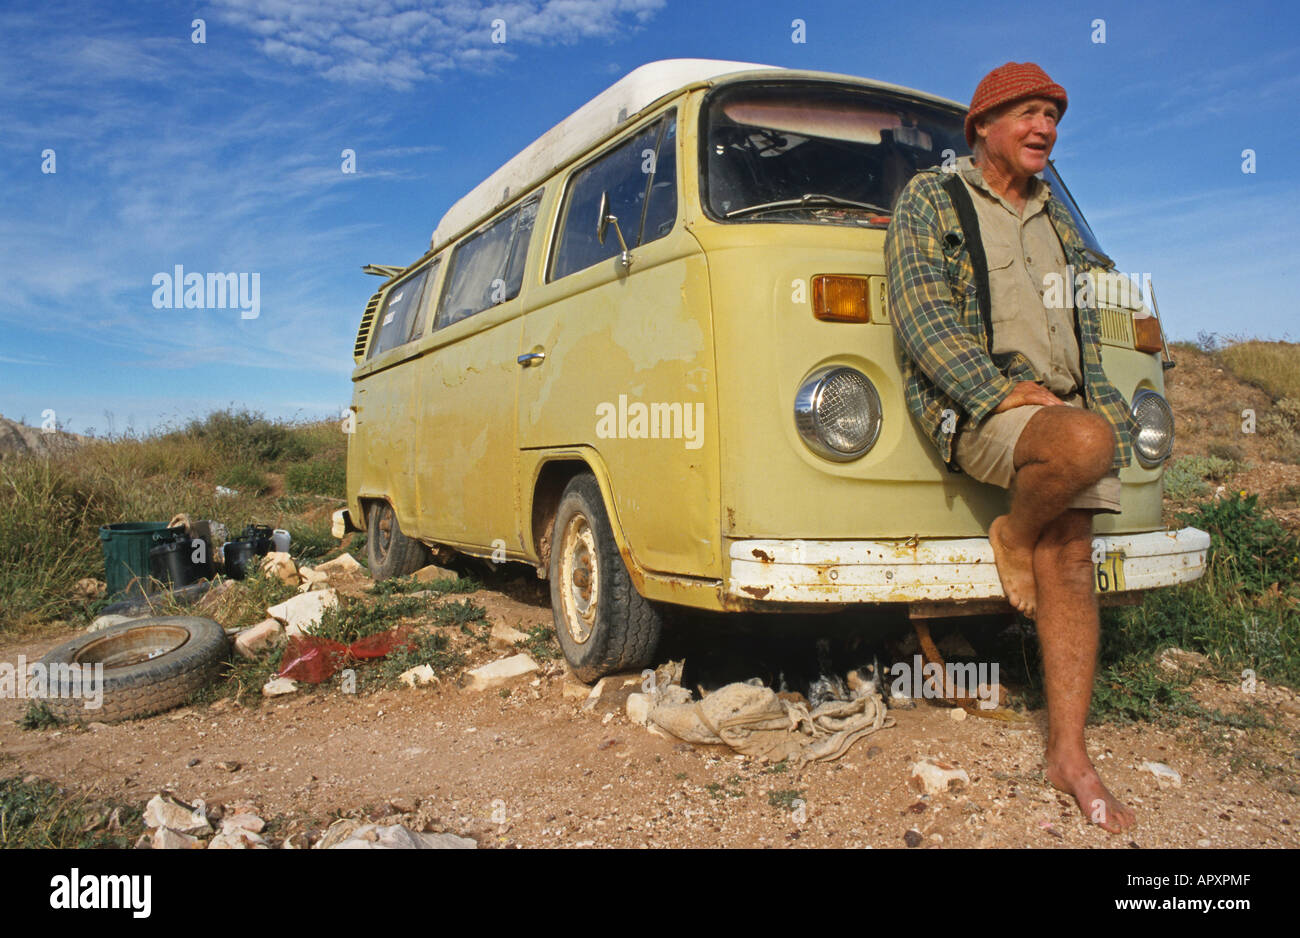 Luckless opal miner and his old VW-van, Locals live an alternative bush lifestyle - Stock Image